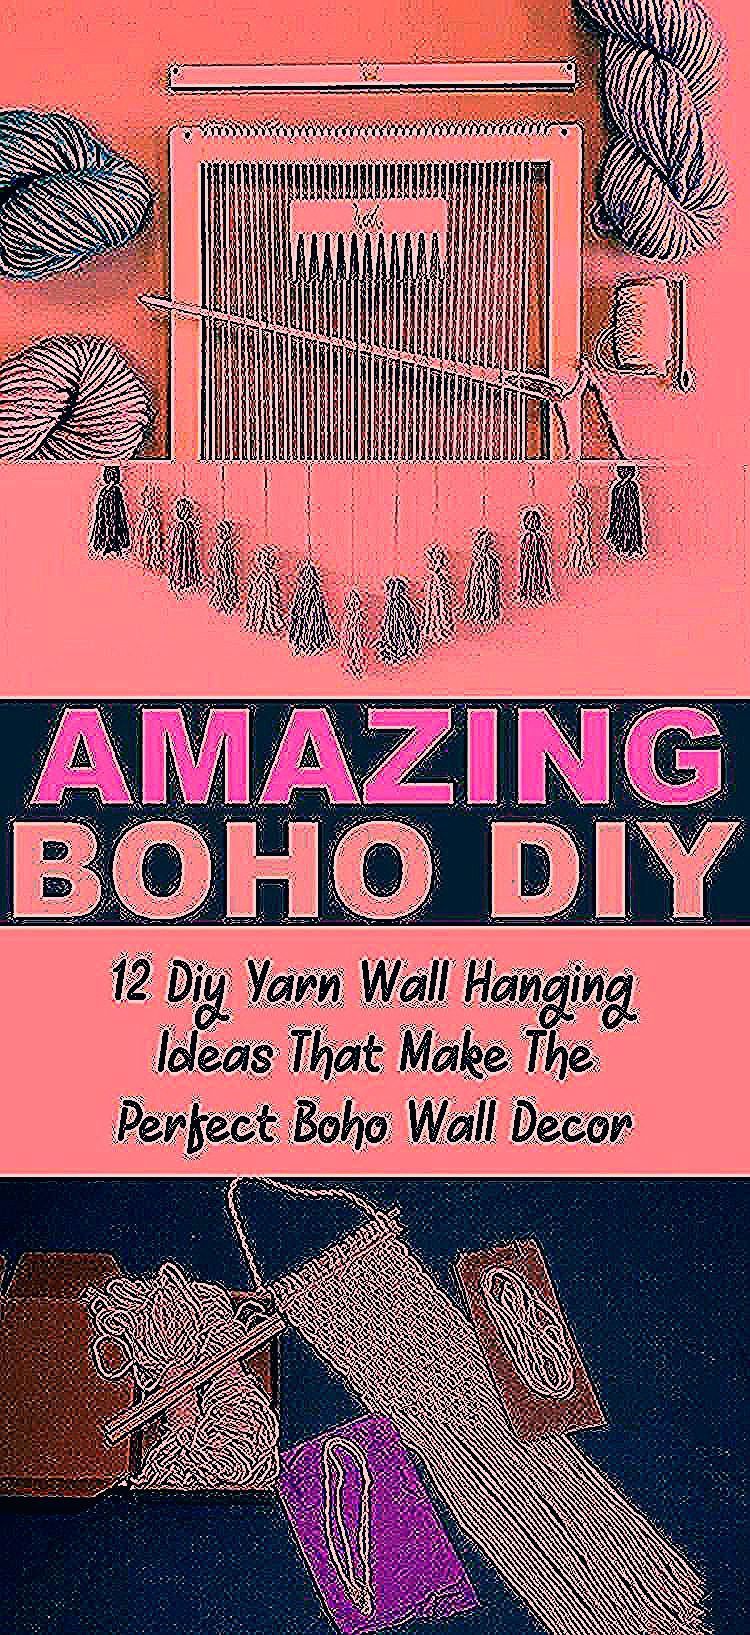 12 DIY boho yarn wall hangings that are easy yarn wall hanging ideas for beginners and make the perfect wall decor for your boho room! #wallhangings #wallart #yarns #boho #bohemian #bedroomdecor #smallspaces #diycrafts #crafts #easycrafts #bohostyle #bohodecorationBabyShower #bohodecorationCandles #bohodecorationUpholstery #bohodecorationHouseplant #bohodecorationJungles